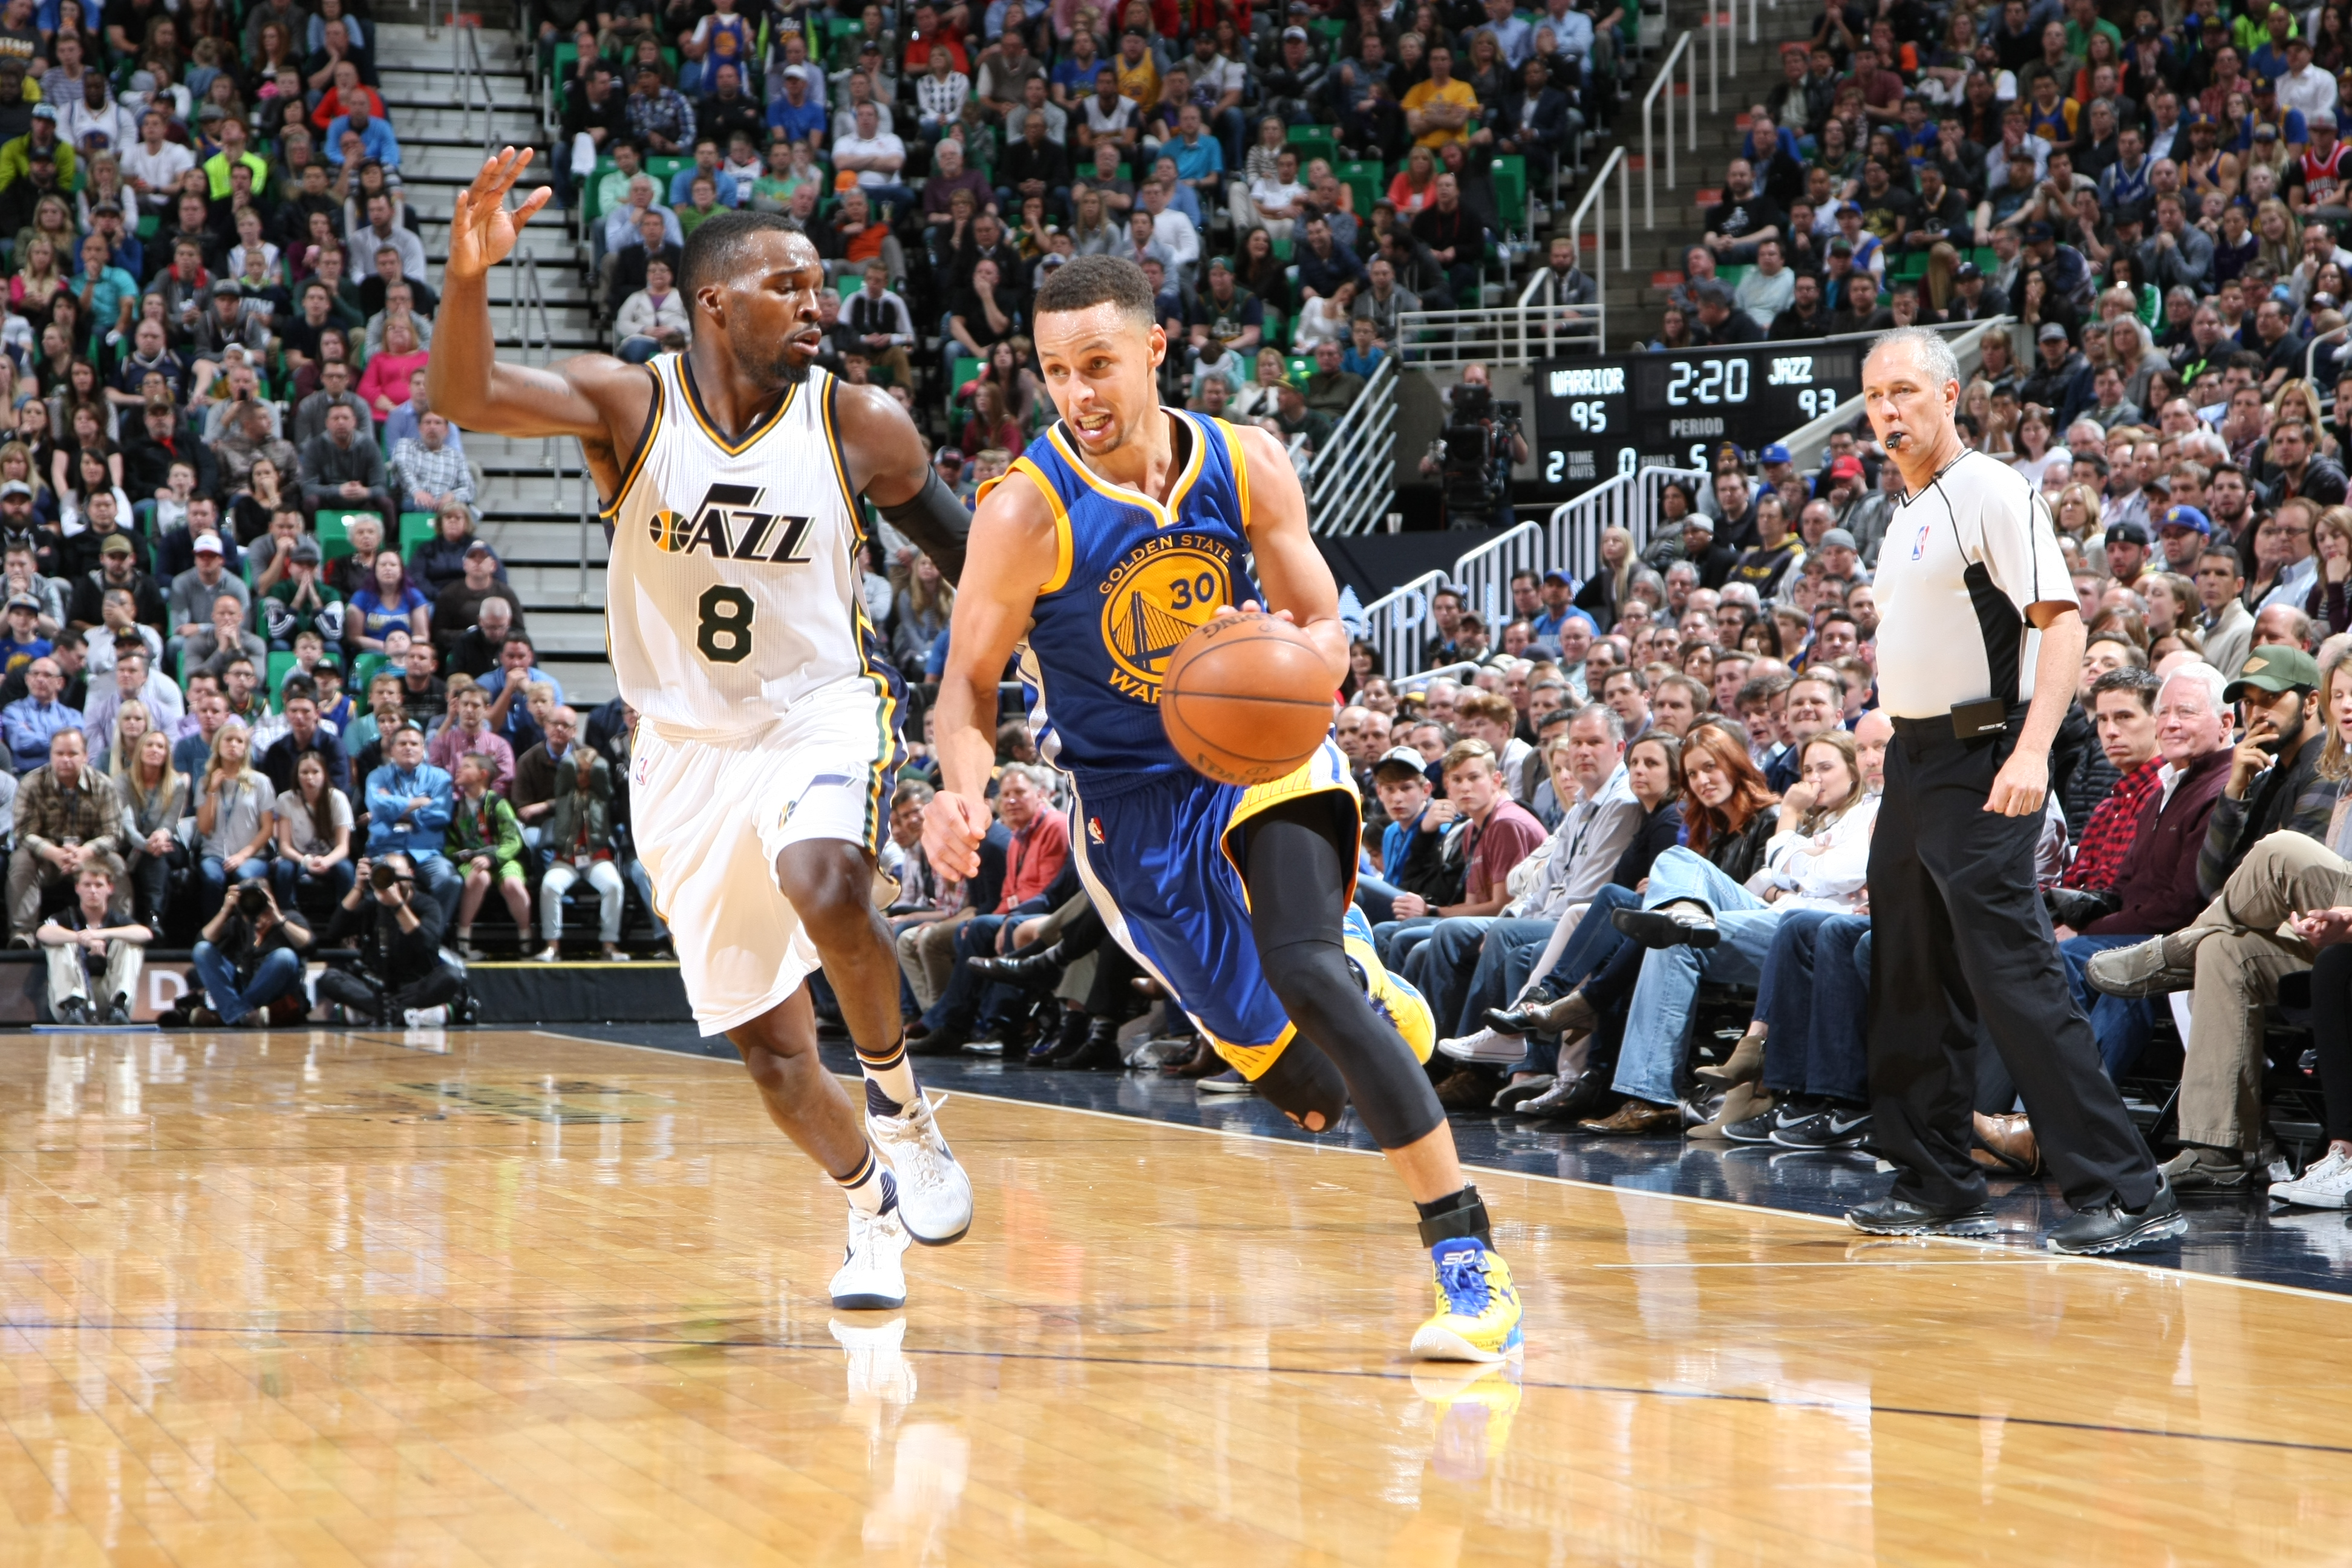 SALT LAKE CITY, UT - MARCH 30:  Stephen Curry #30 of the Golden State Warriors handles the ball against Shelvin Mack #8 of the Utah Jazz on March 30, 2016 at vivint.SmartHome Arena in Salt Lake City, Utah. (Photo by Melissa Majchrzak/NBAE via Getty Images